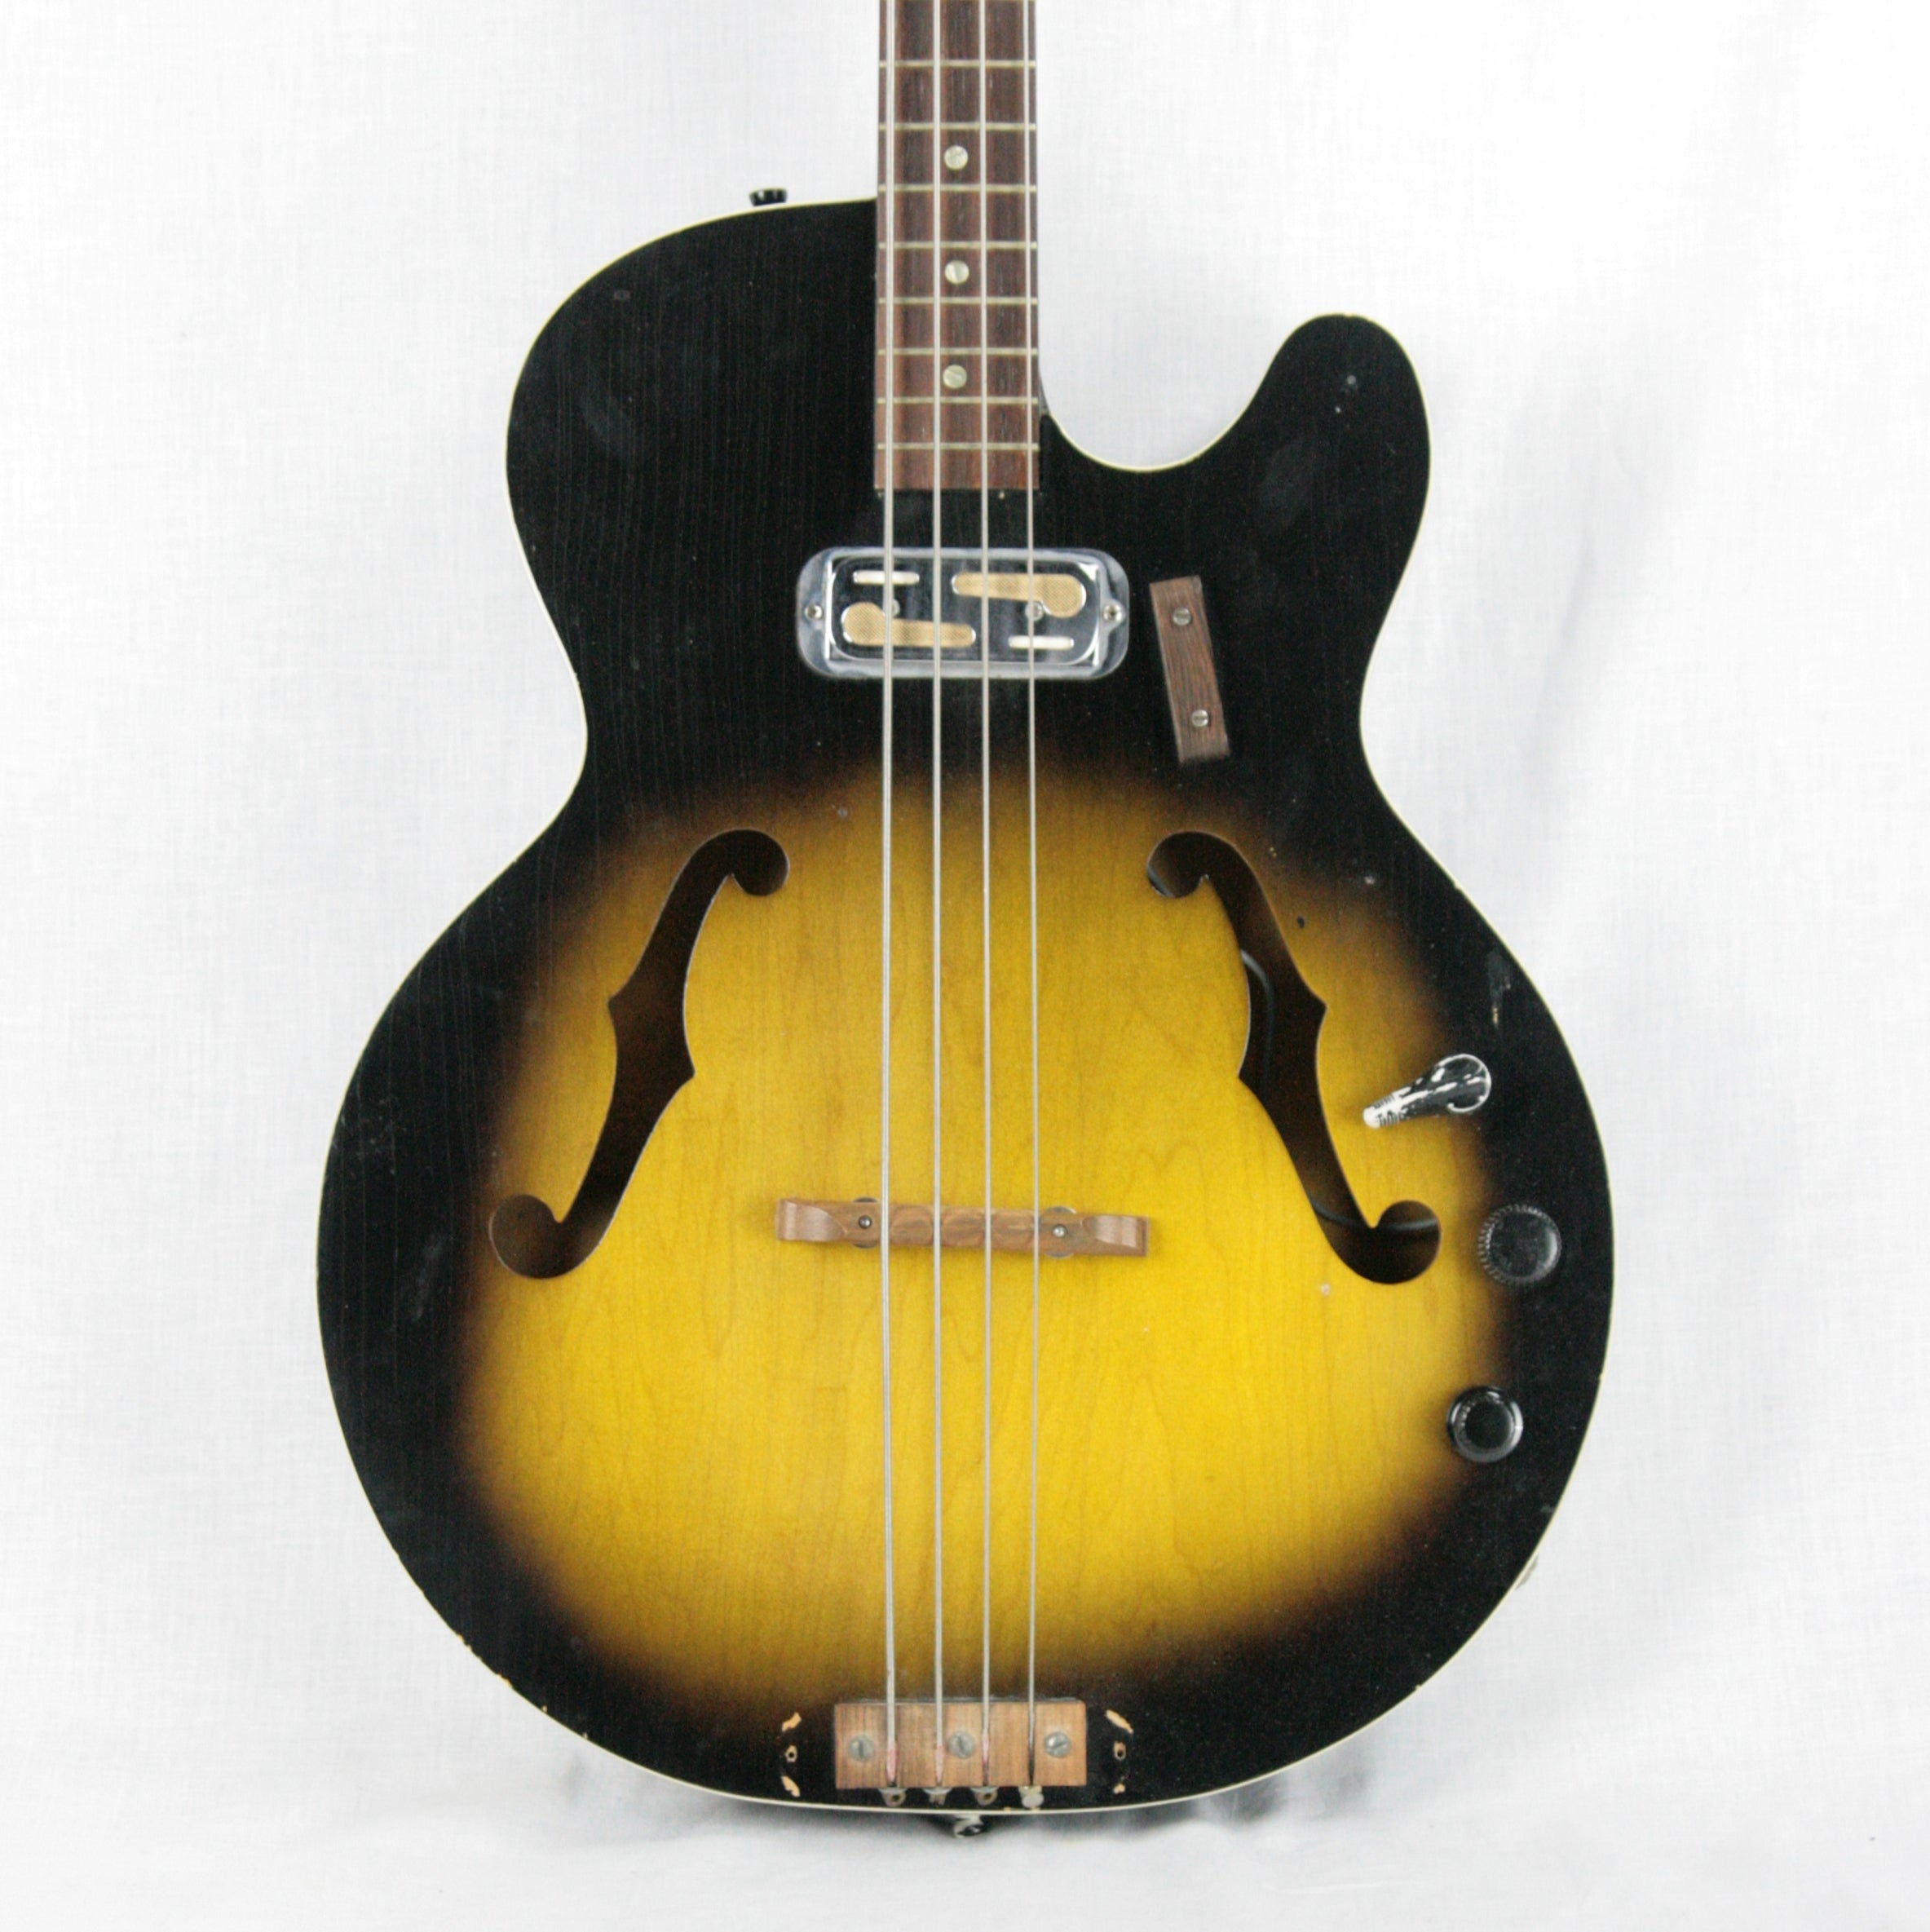 1960's Harmony H-22 Bass Guitar! Electric Hollowbody! Dearmond Pickup! Vintage!